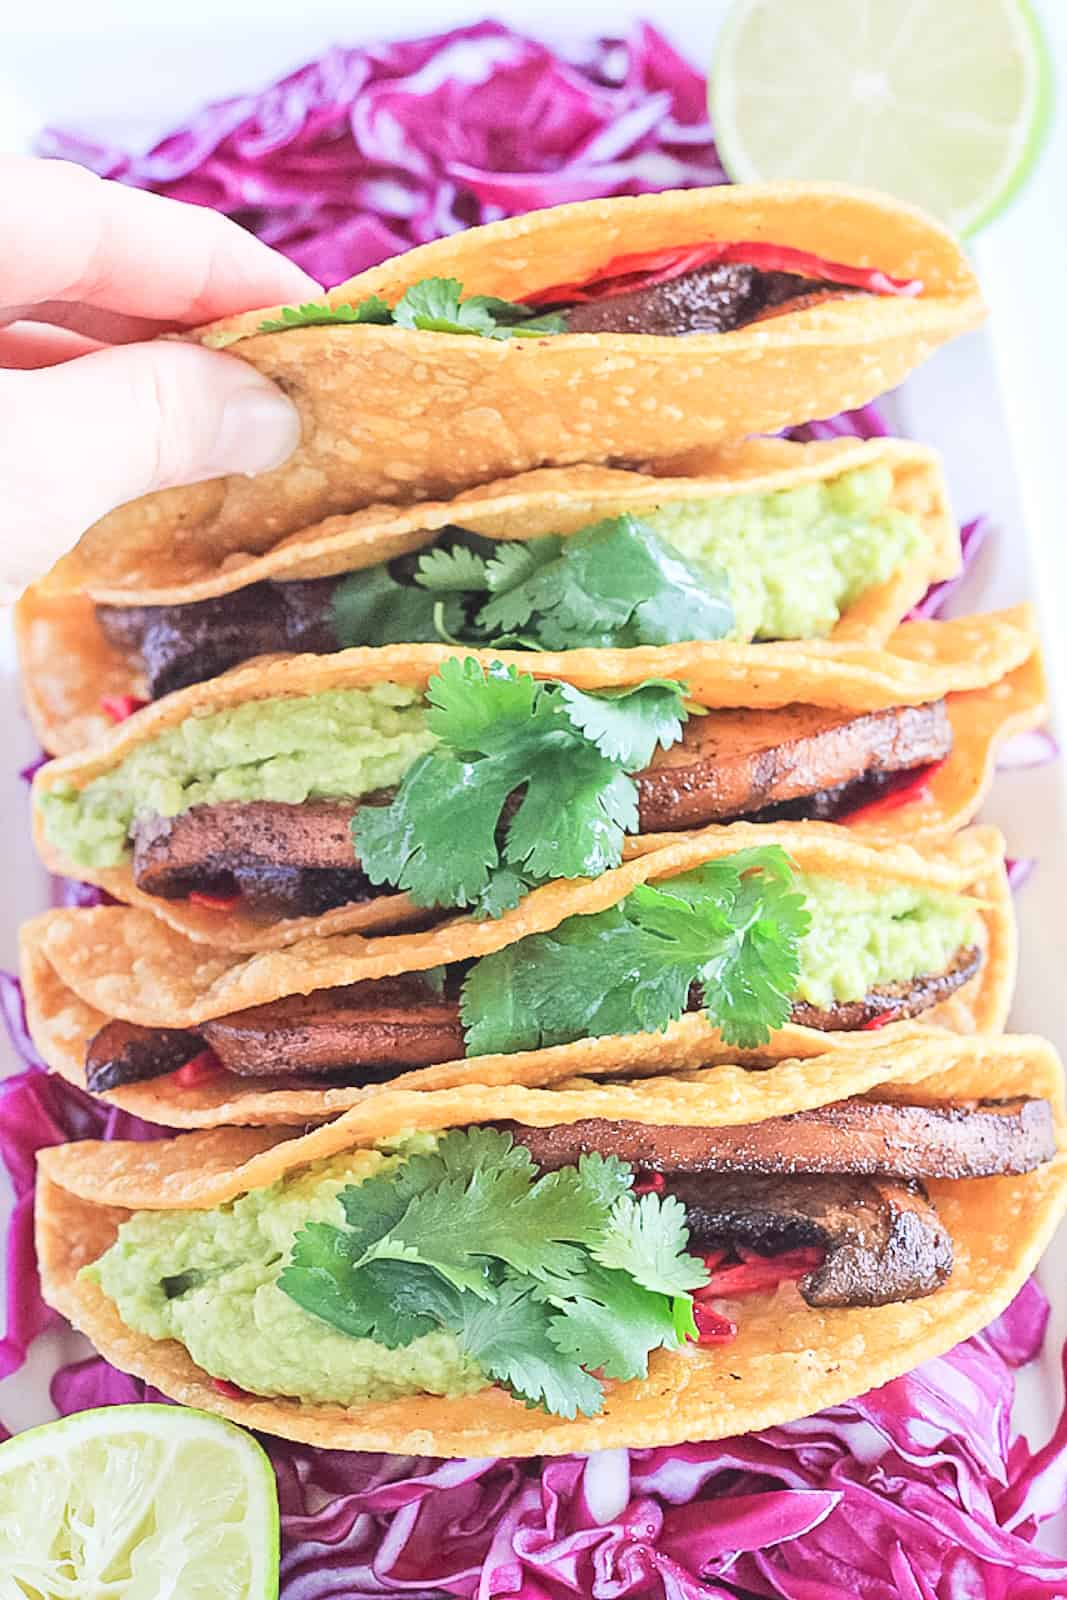 White platter of portobello tacos in a corn tortilla with guacamole, cabbage and cilantro, with a hand picking up a taco.